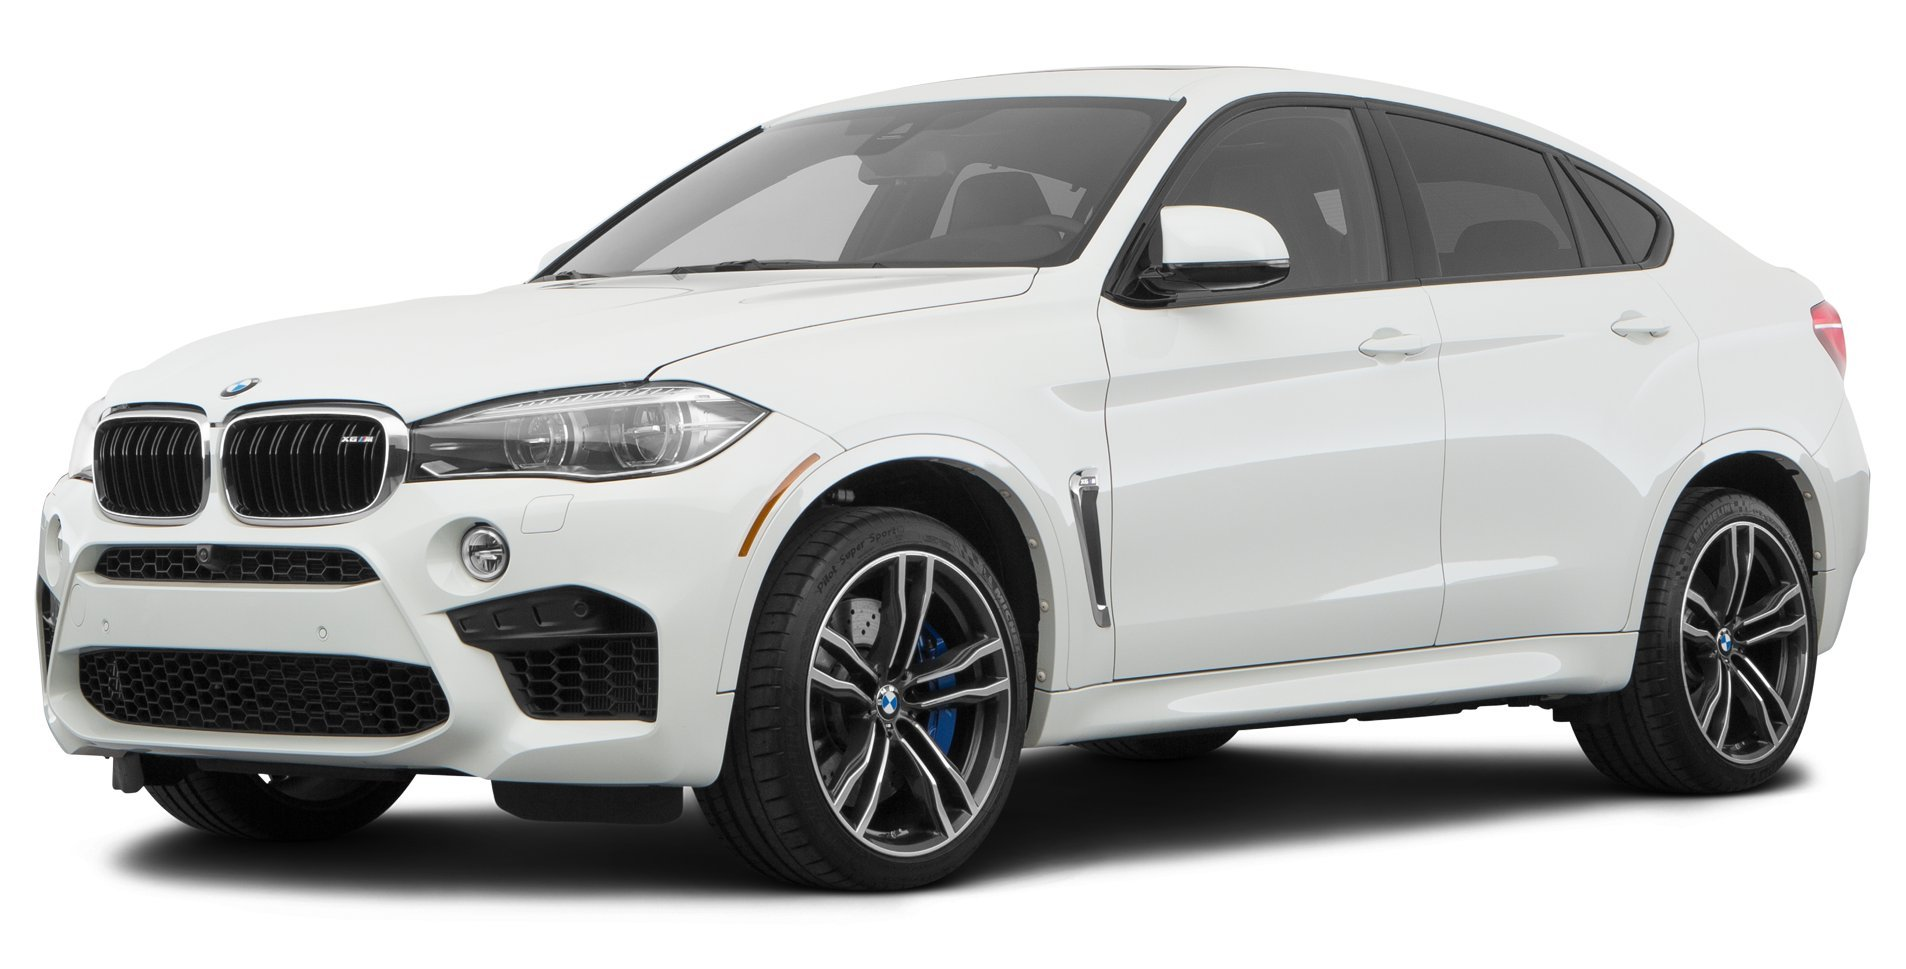 2018 bmw x6 reviews images and specs vehicles. Black Bedroom Furniture Sets. Home Design Ideas